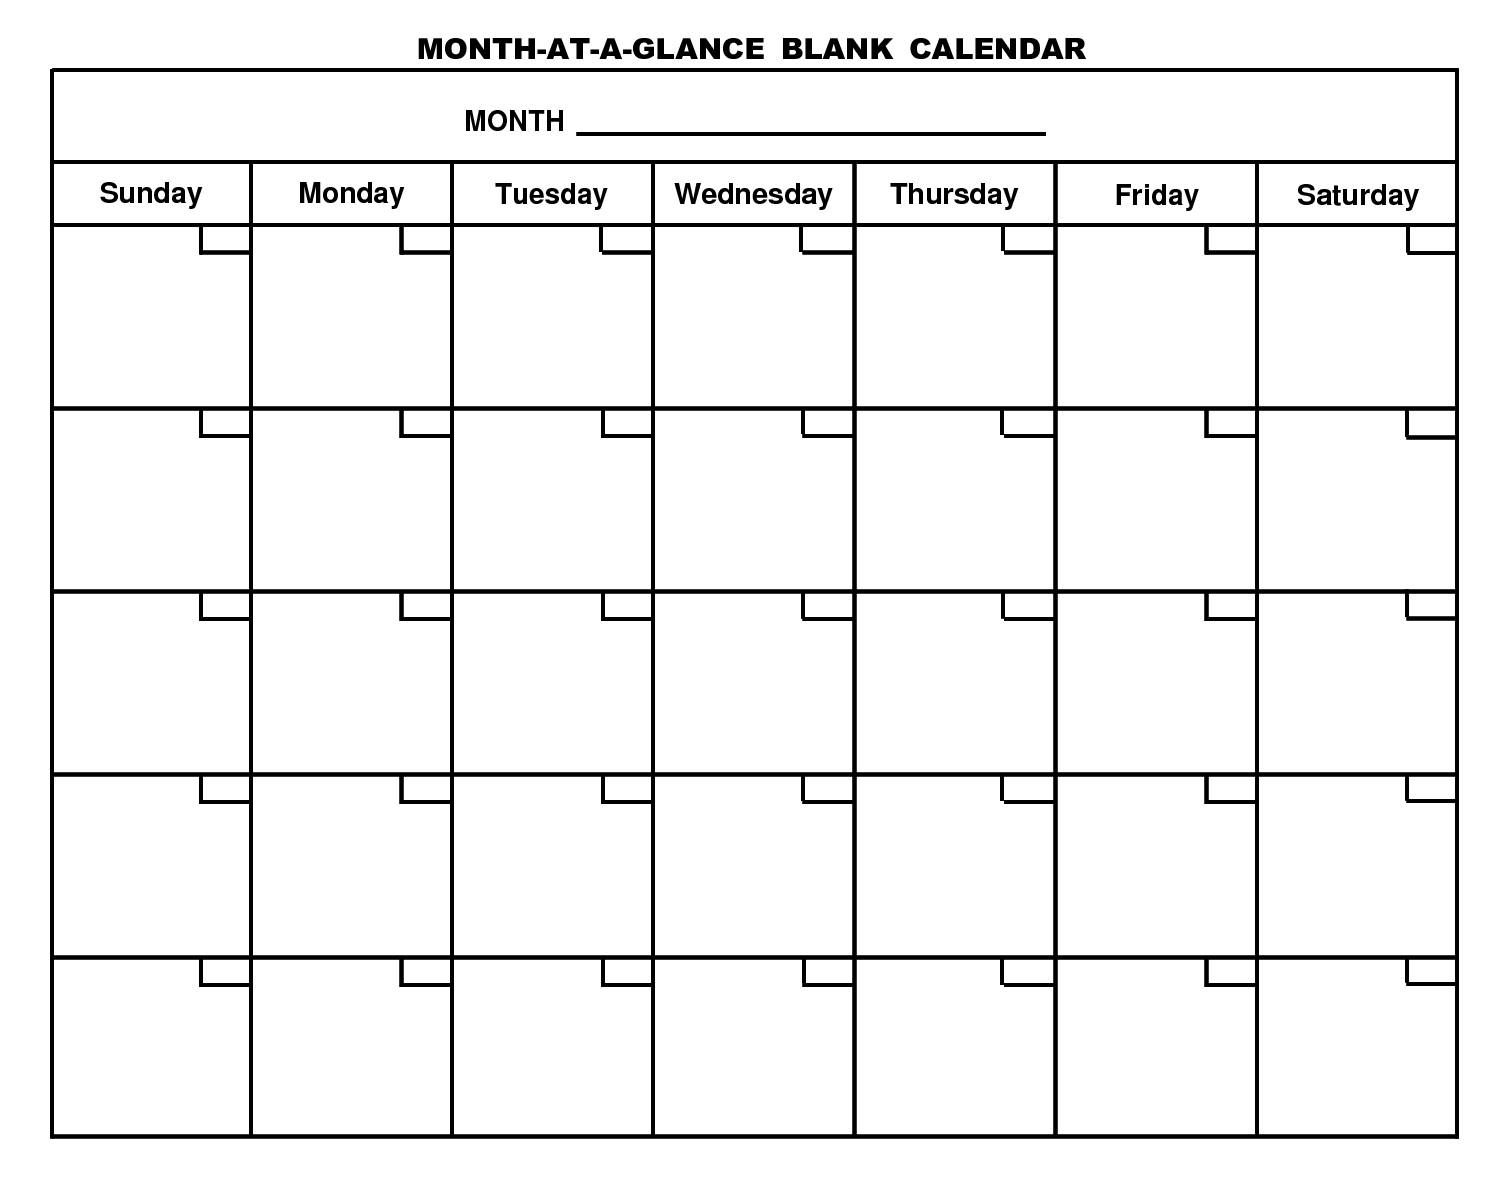 Free Printable Monthly Calendar With Large Boxes Skymaps Publication regarding Blank Monthly Calendar Print Out